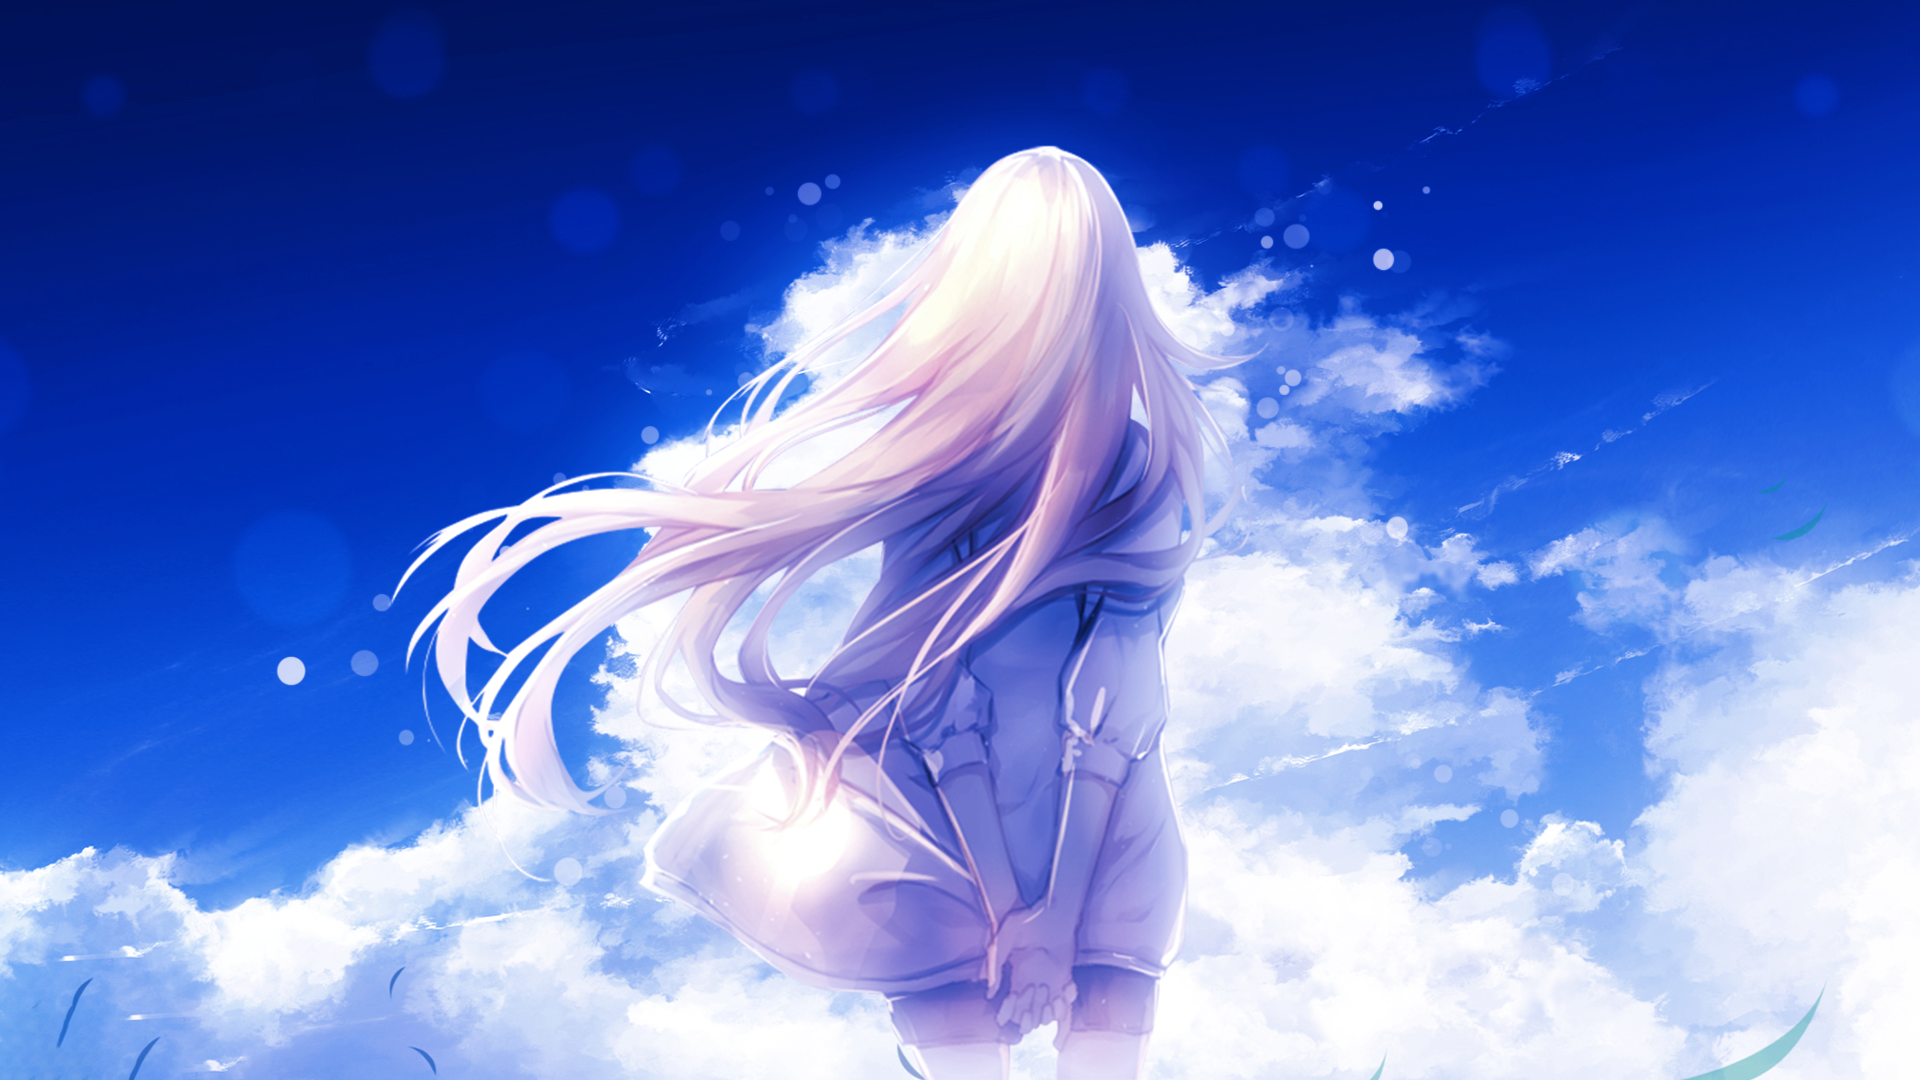 Wallpapers ID:1034437